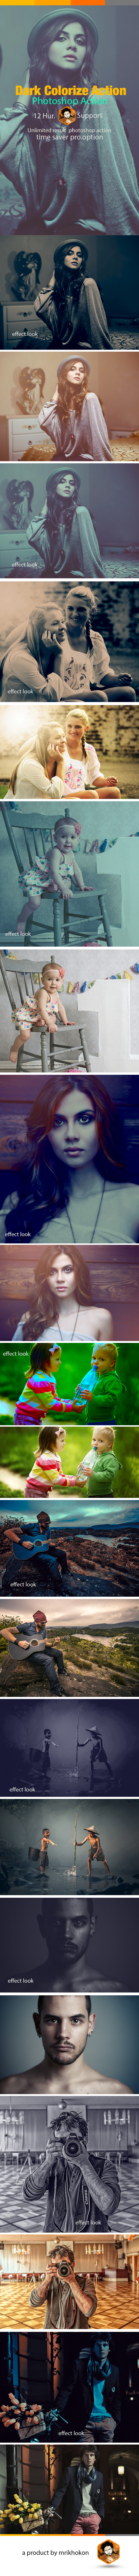 Dark Colorize Action - Actions Photoshop